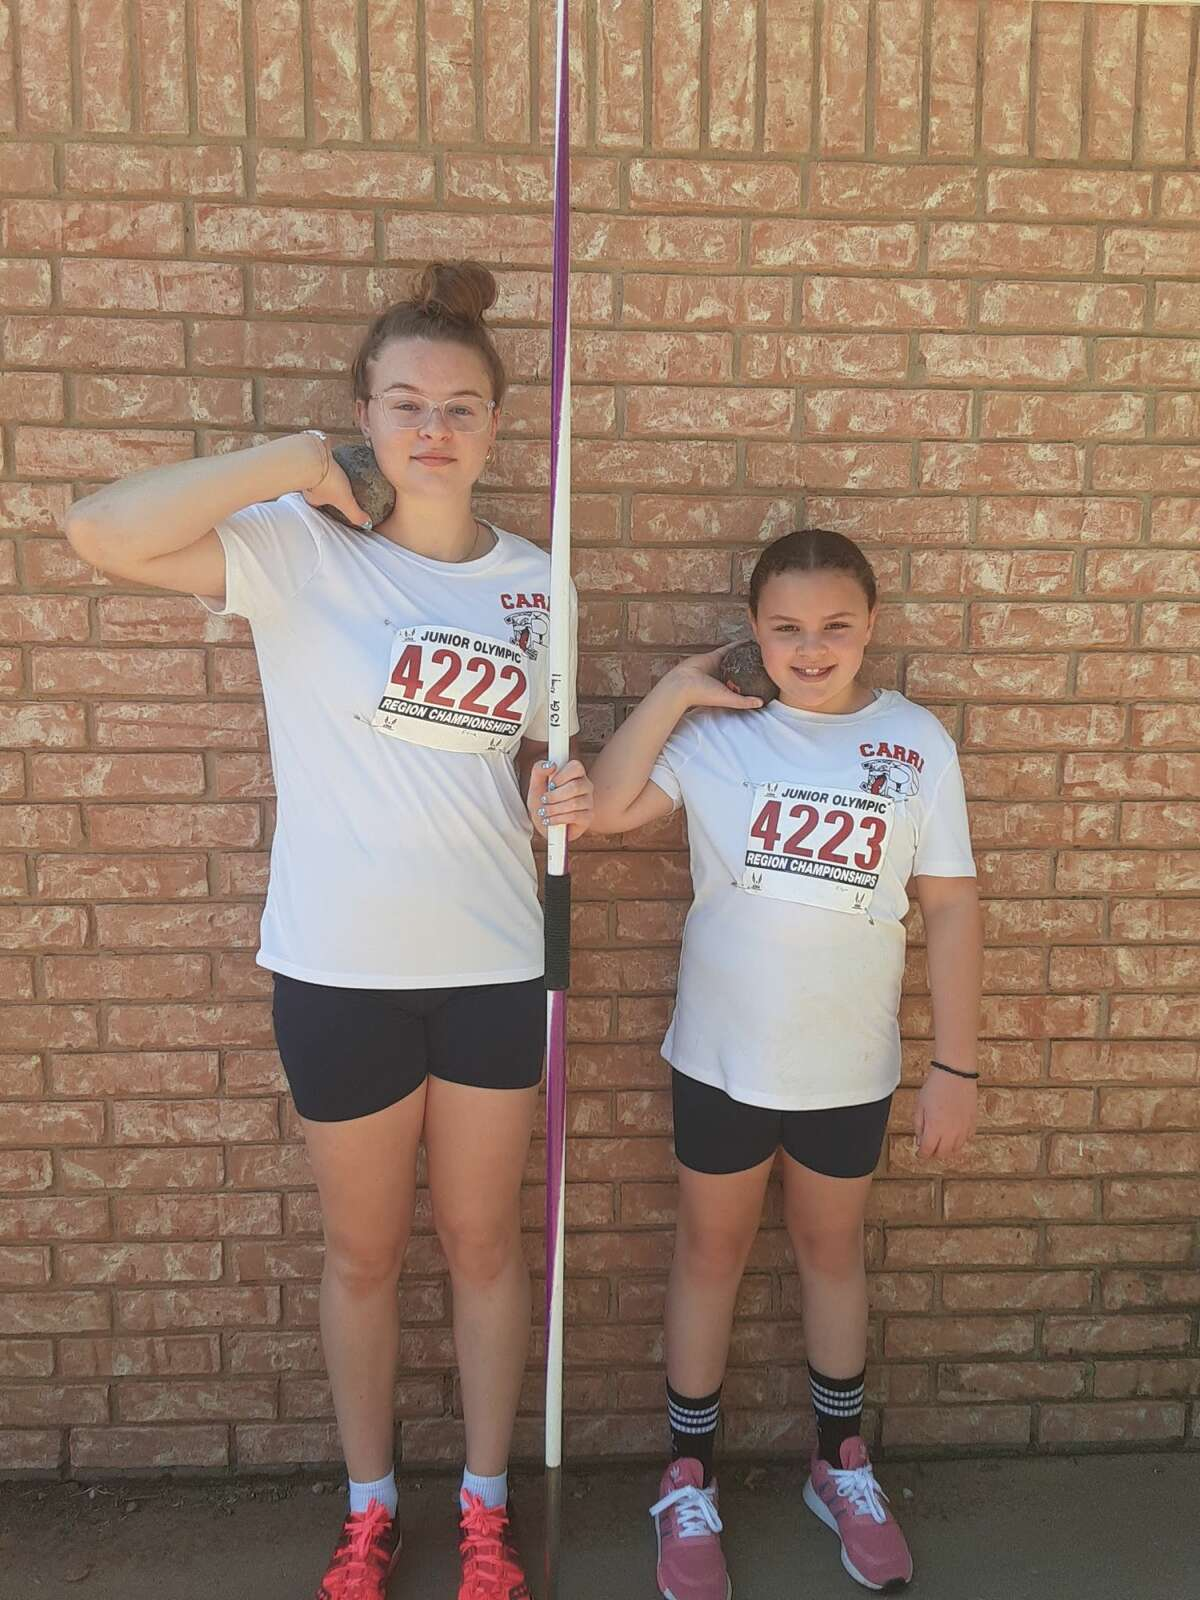 Sisters Elena, left, and Elysa Carri each qualified for the USATF National Junior Olympics earlier this month. Both qualified in the shot put in their age divisions with Elena also qualifying in the javelin.